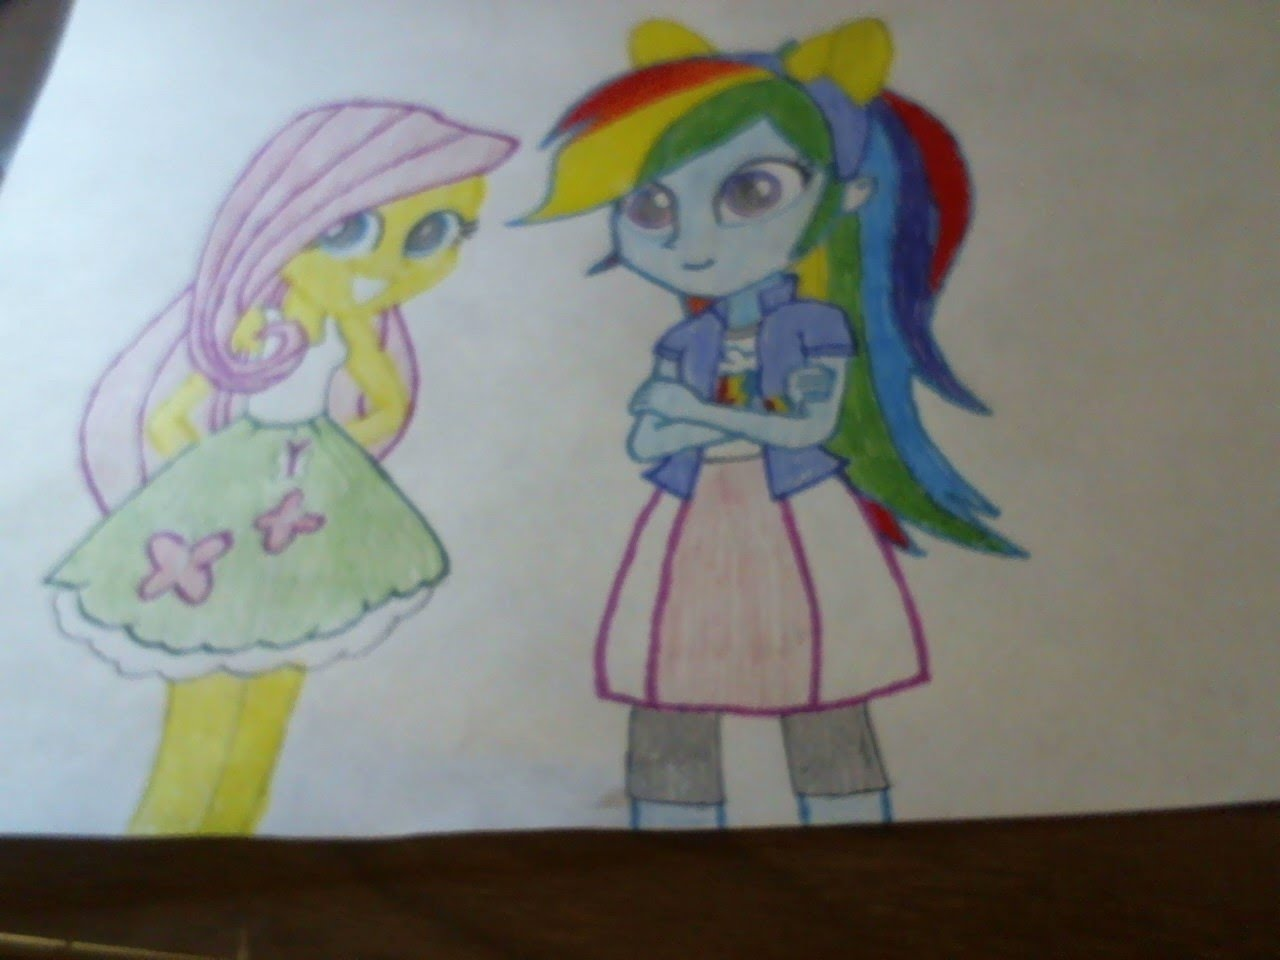 My Little Pony Printable Coloring Pages Twilight Sparkle : My little pony alicorn twilight sparkle high kick mlp my